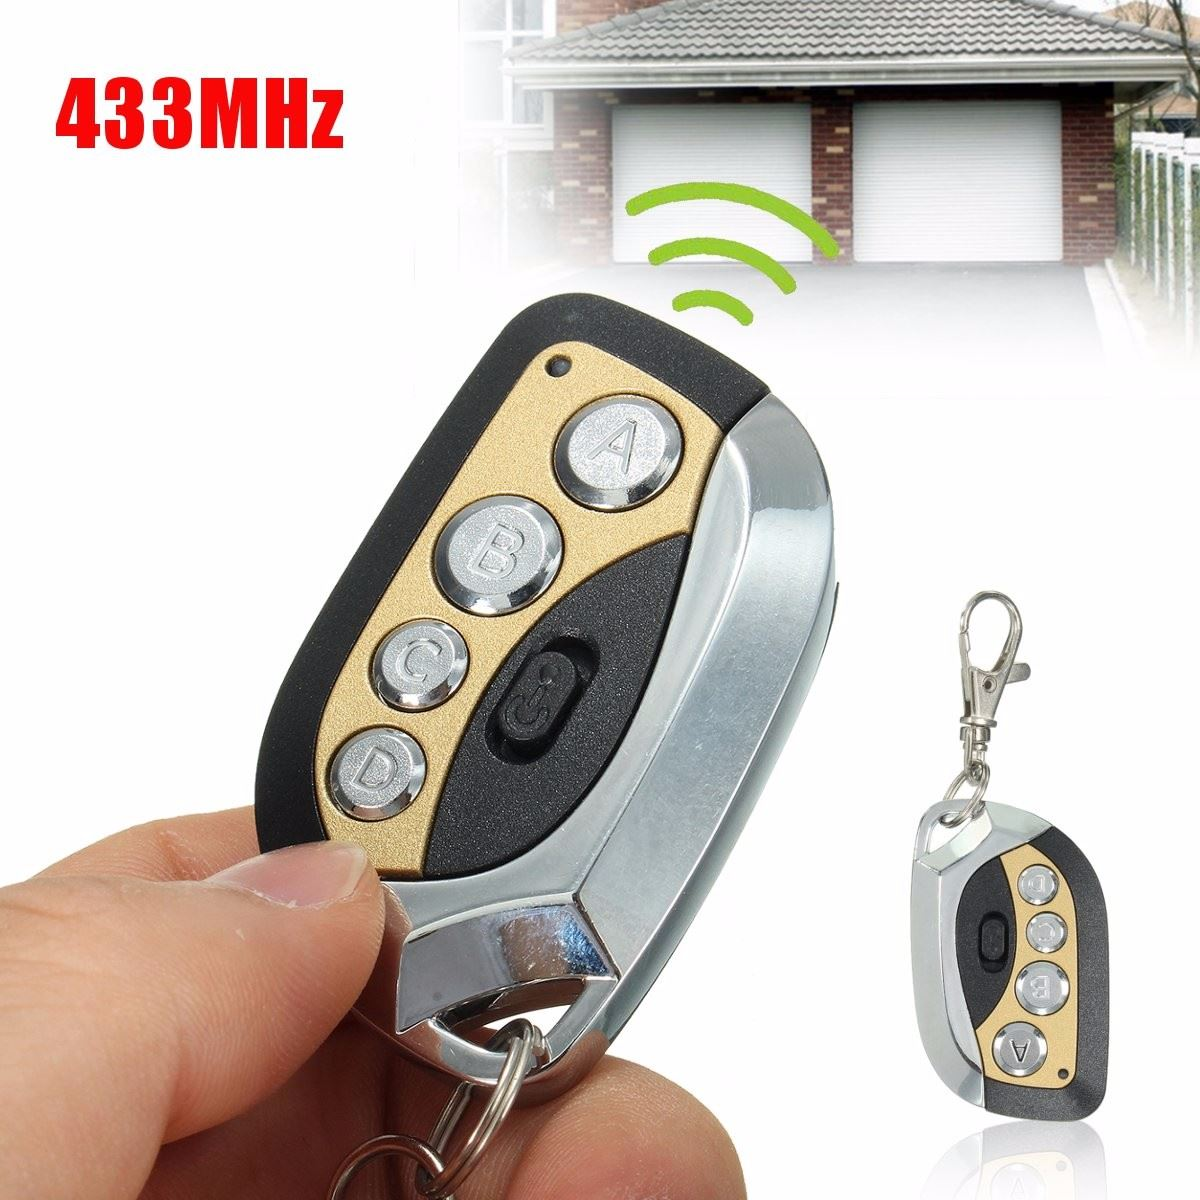 Universal 433MHz Electric Cloning Car Gate Garage Door Remote Control Key Fob(China (Mainland))